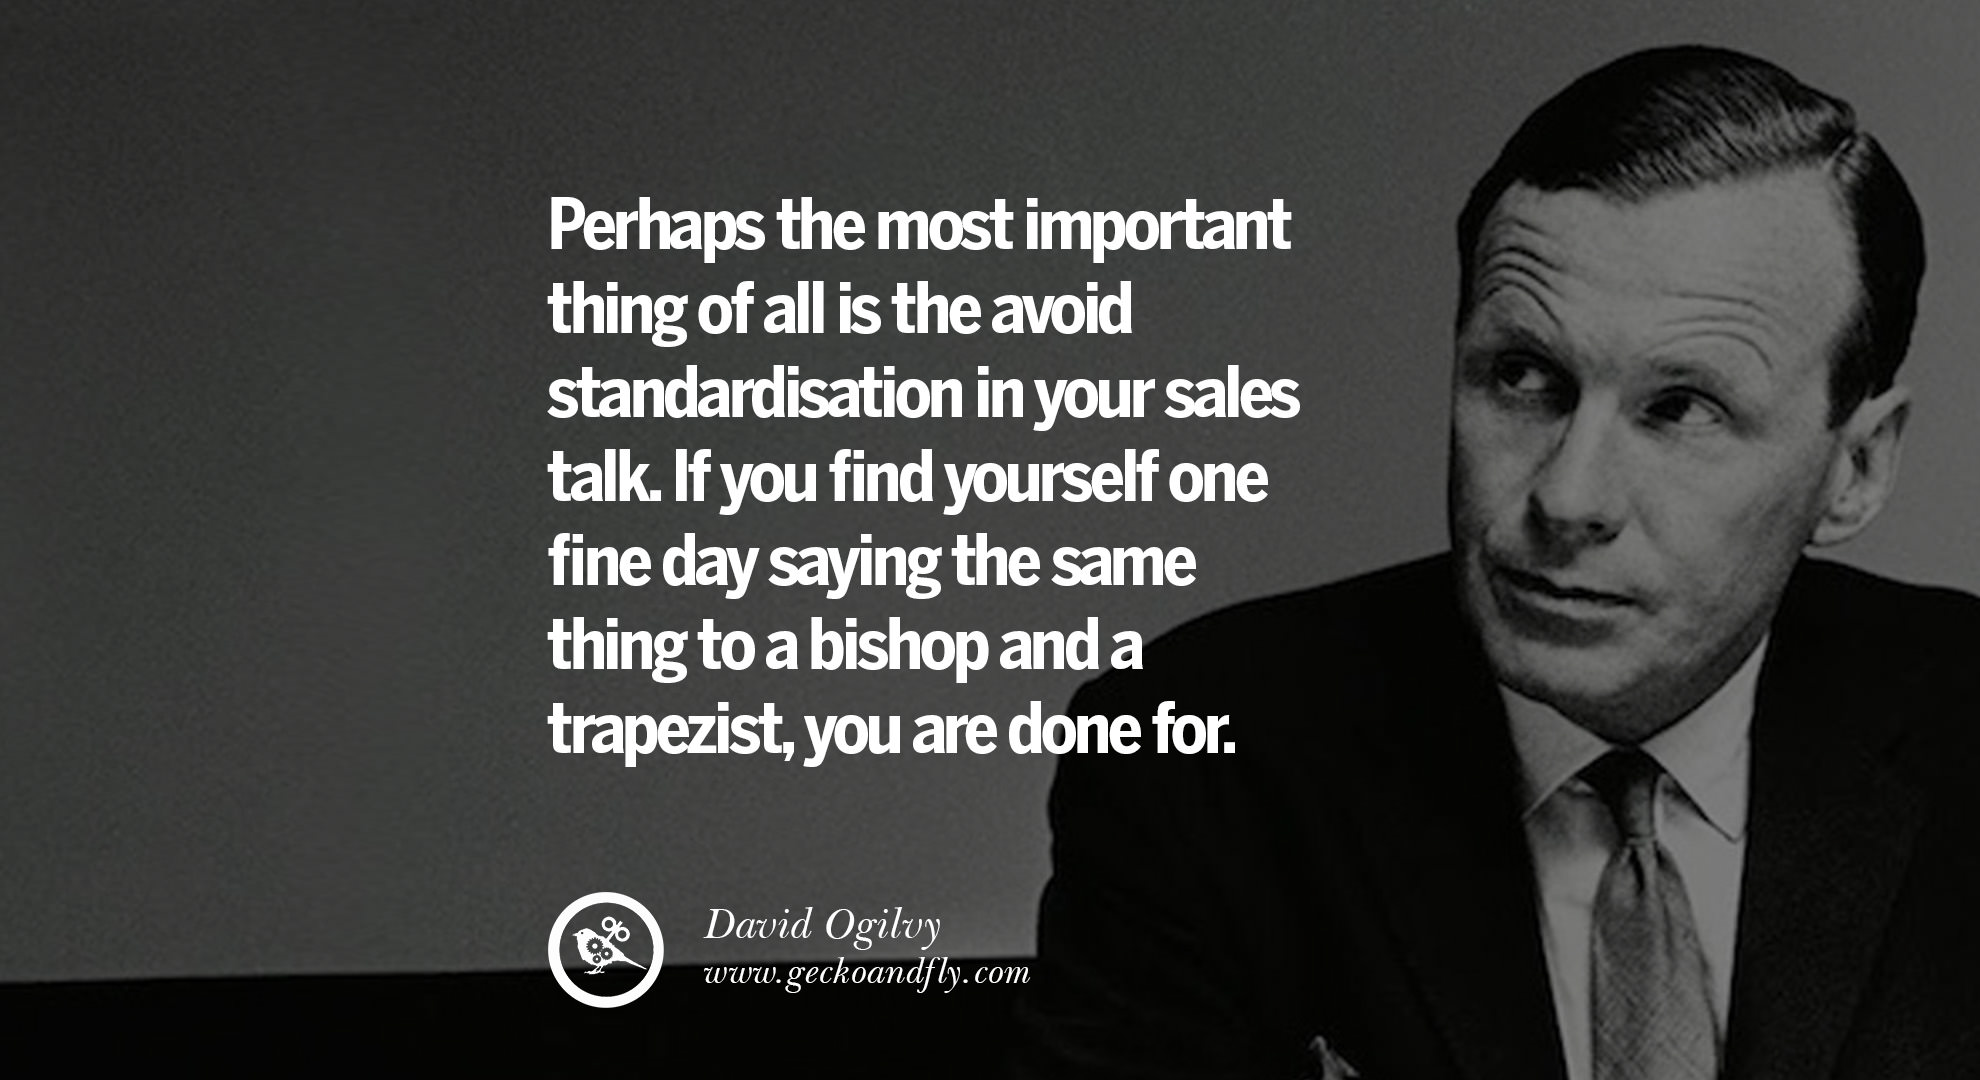 David Ogilvy Quotes 10 Tips From David Ogilvy On How To Be A Great Salesperson